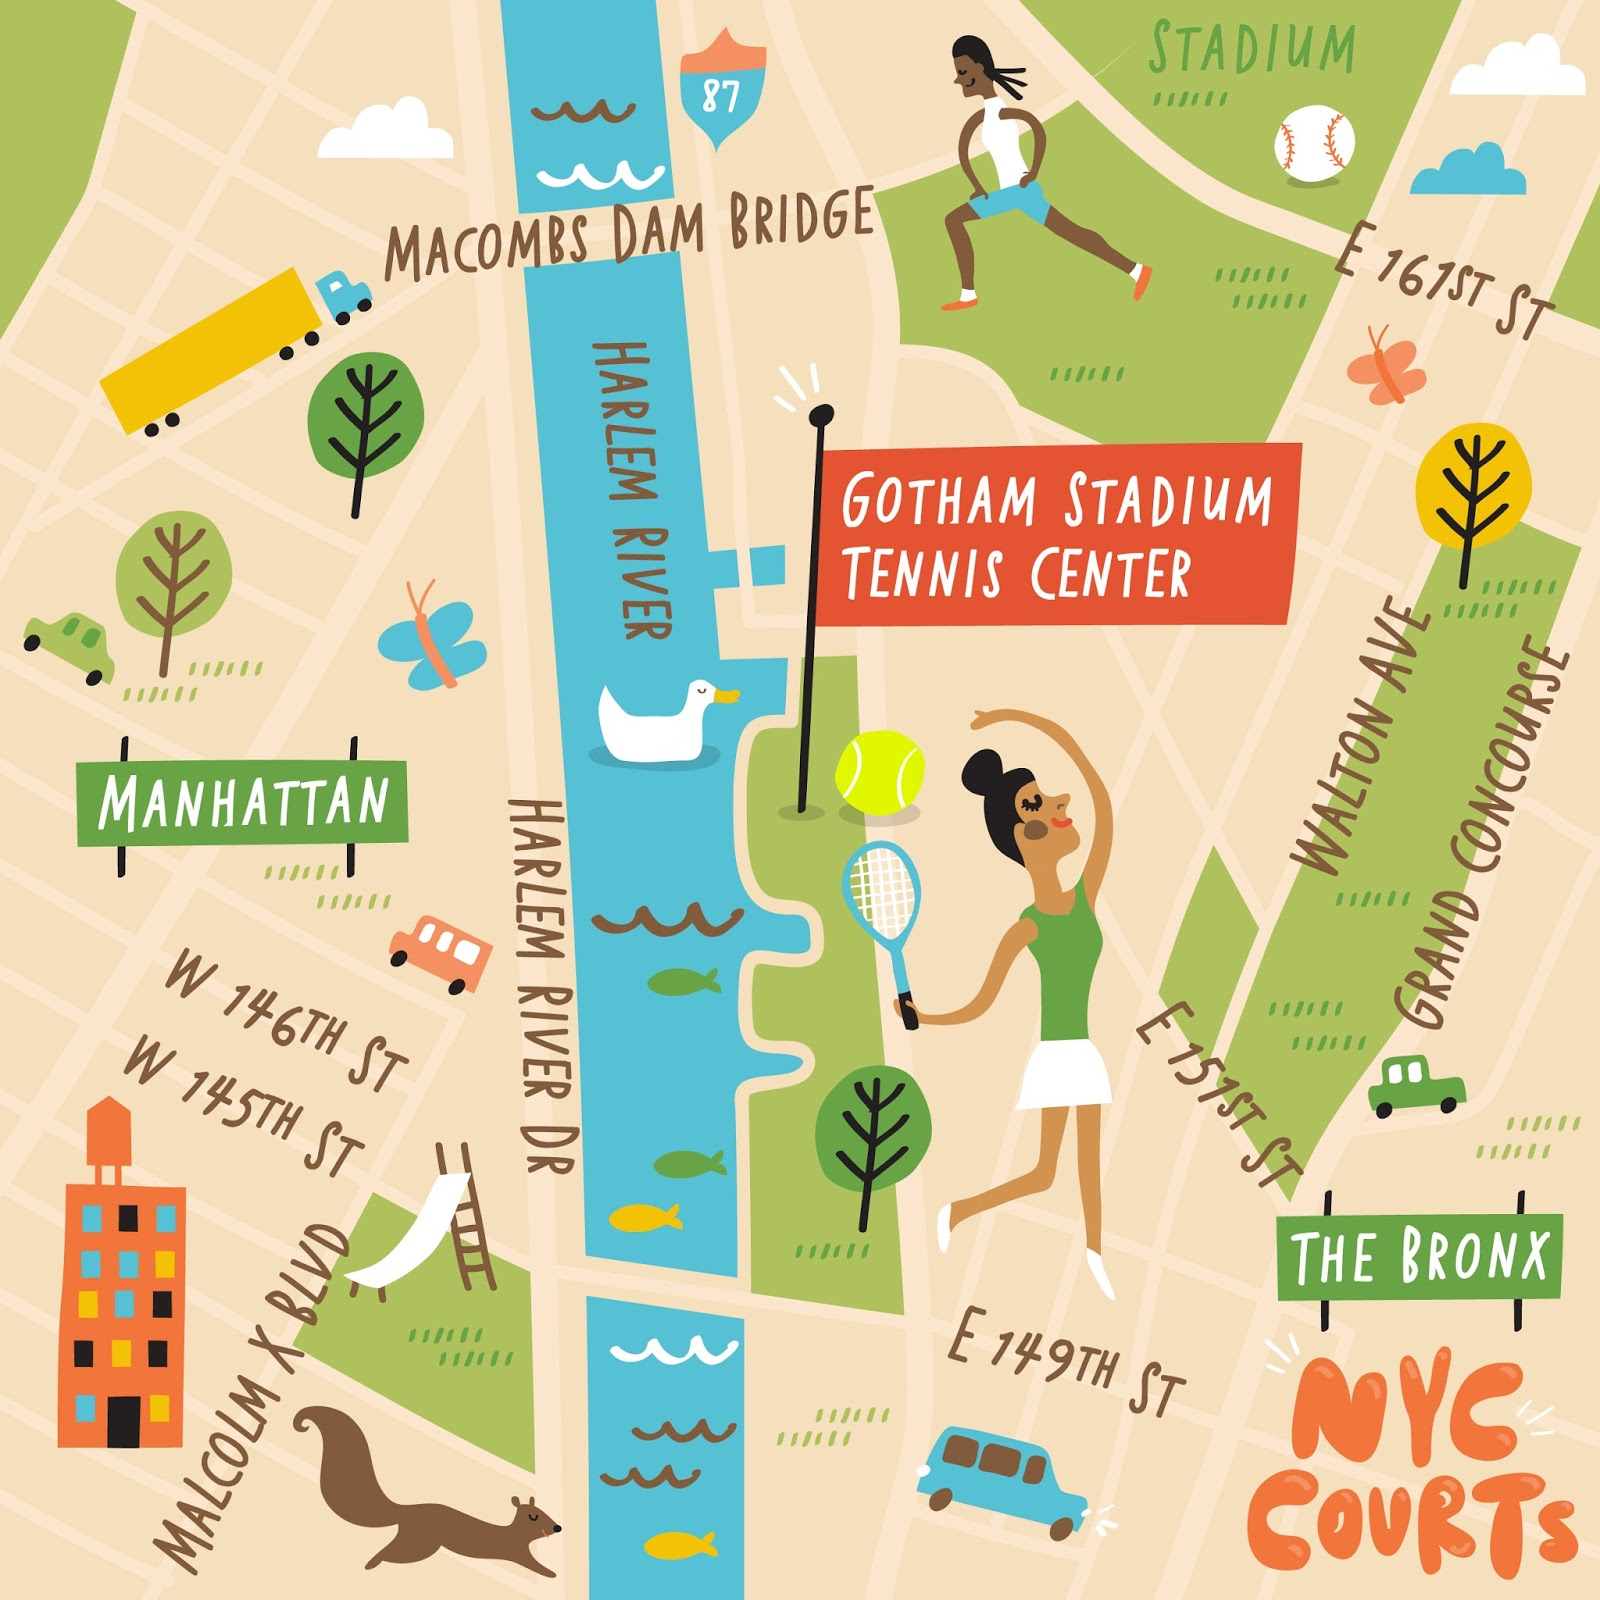 I Draw Maps Illustrated Map Series of NYC Tennis Courts for IBM